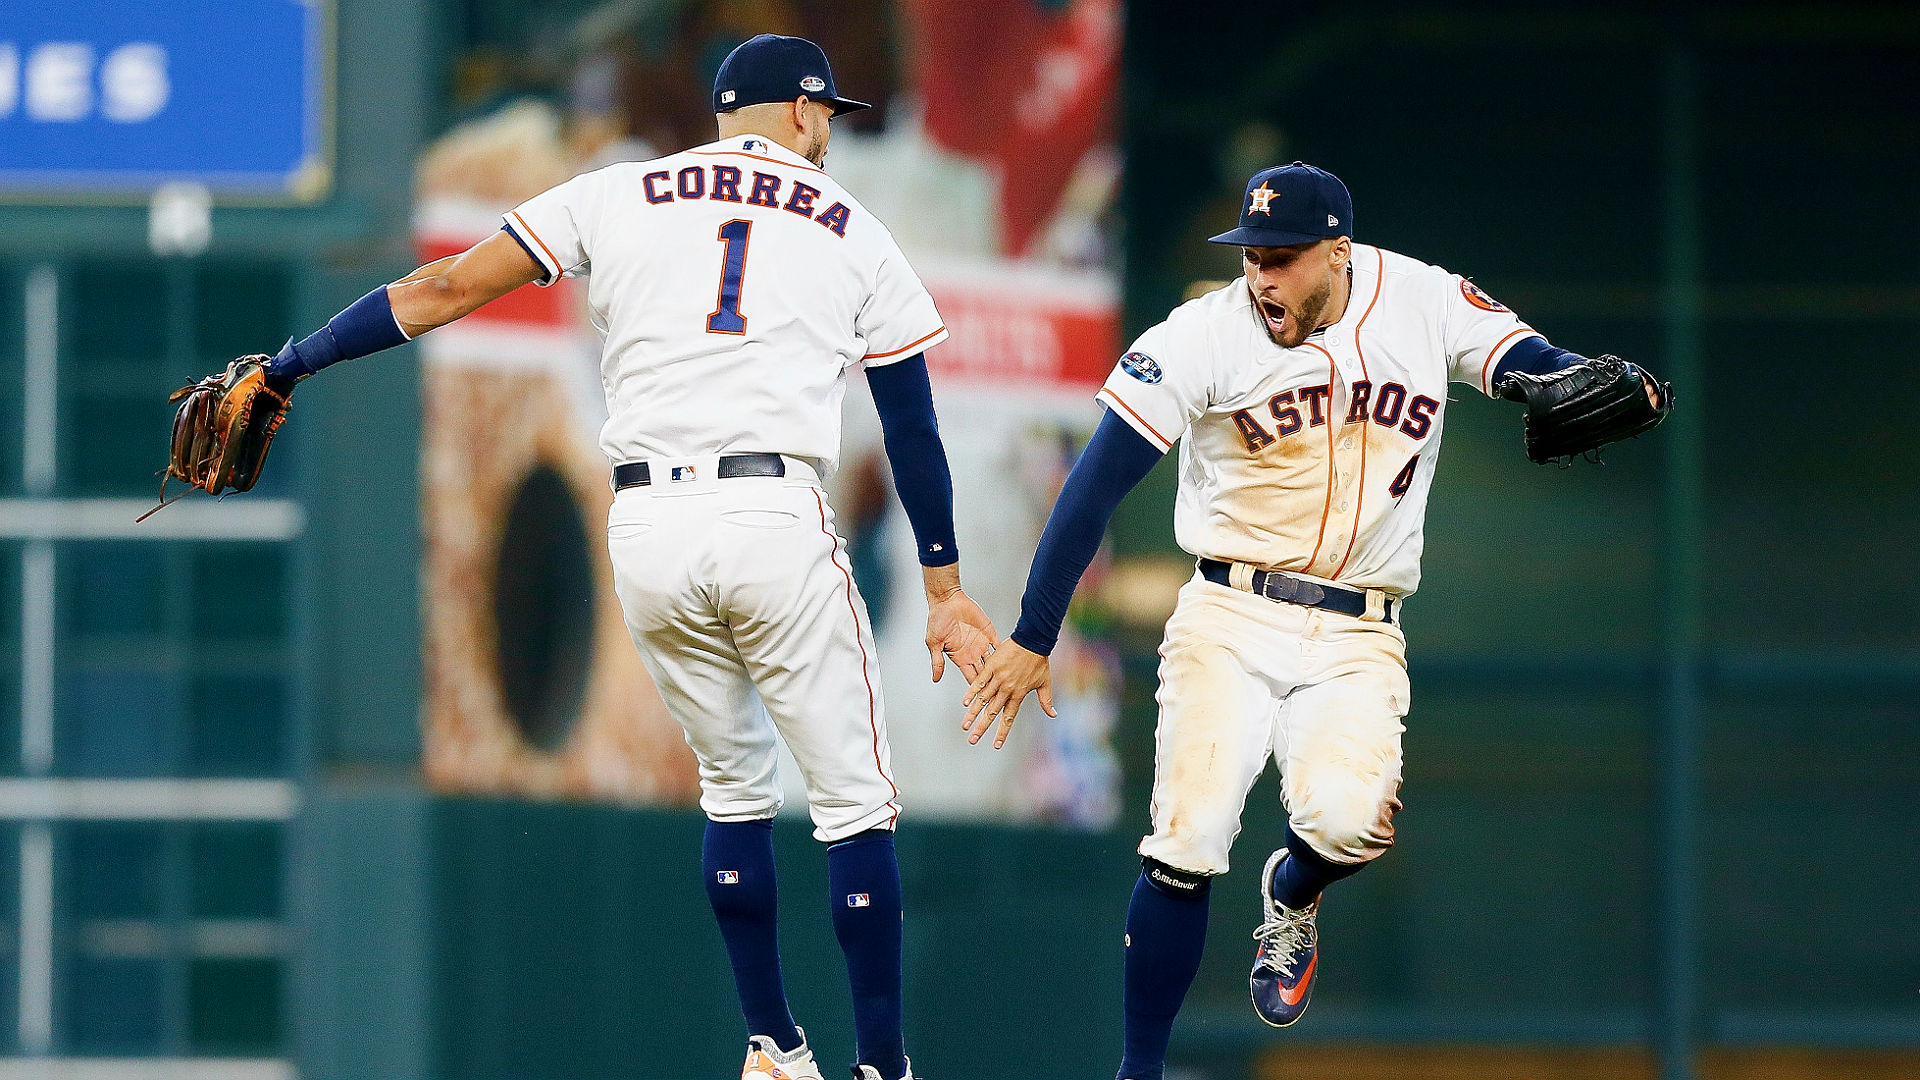 Astros vs  Indians results: Astros showcase power, take ALDS